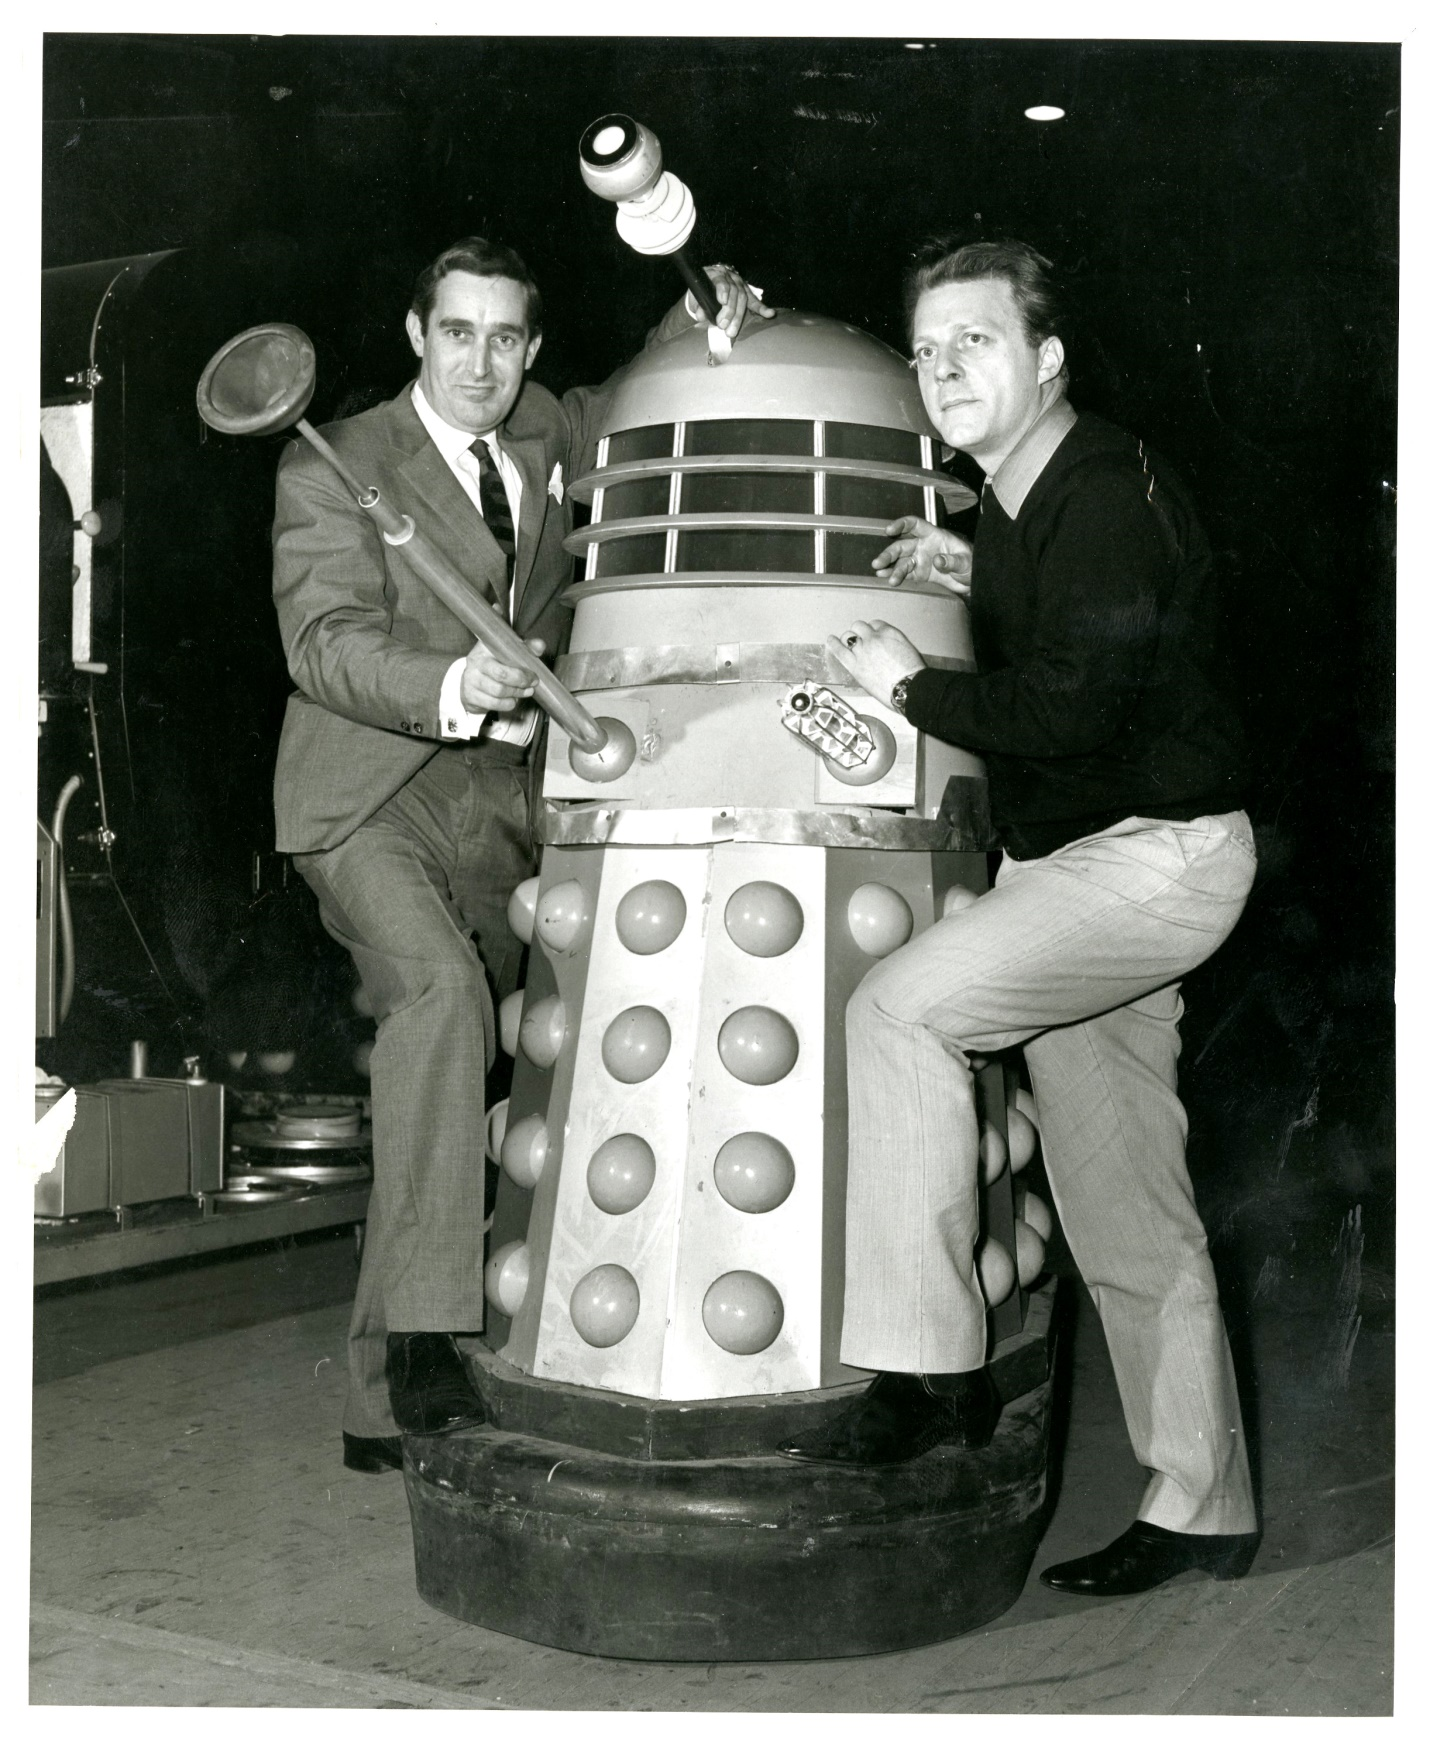 Daily Mirror press call photo of Terry Nation and Raymond Cusick with a Dalek (from the Raymond Cusick personal collection)